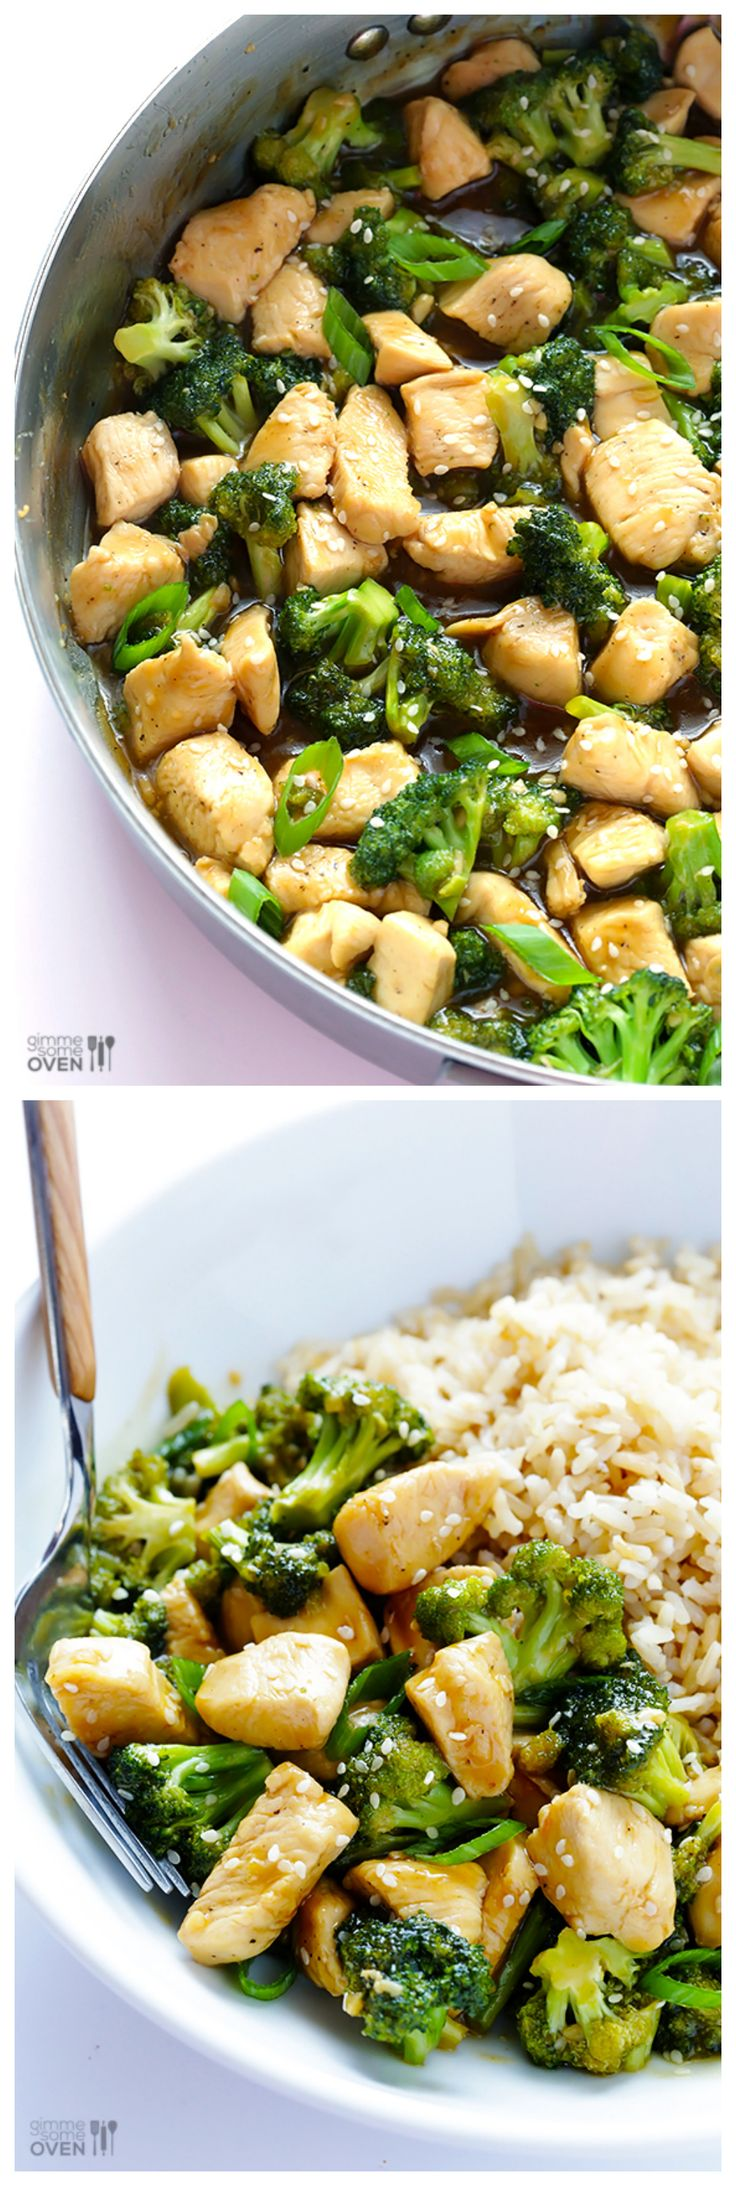 12-Minute Chicken Broccoli -- fresh, flavorful, and ready to go in just 12 minutes! gimmesomeoven.com #dinner #recipe #chicken